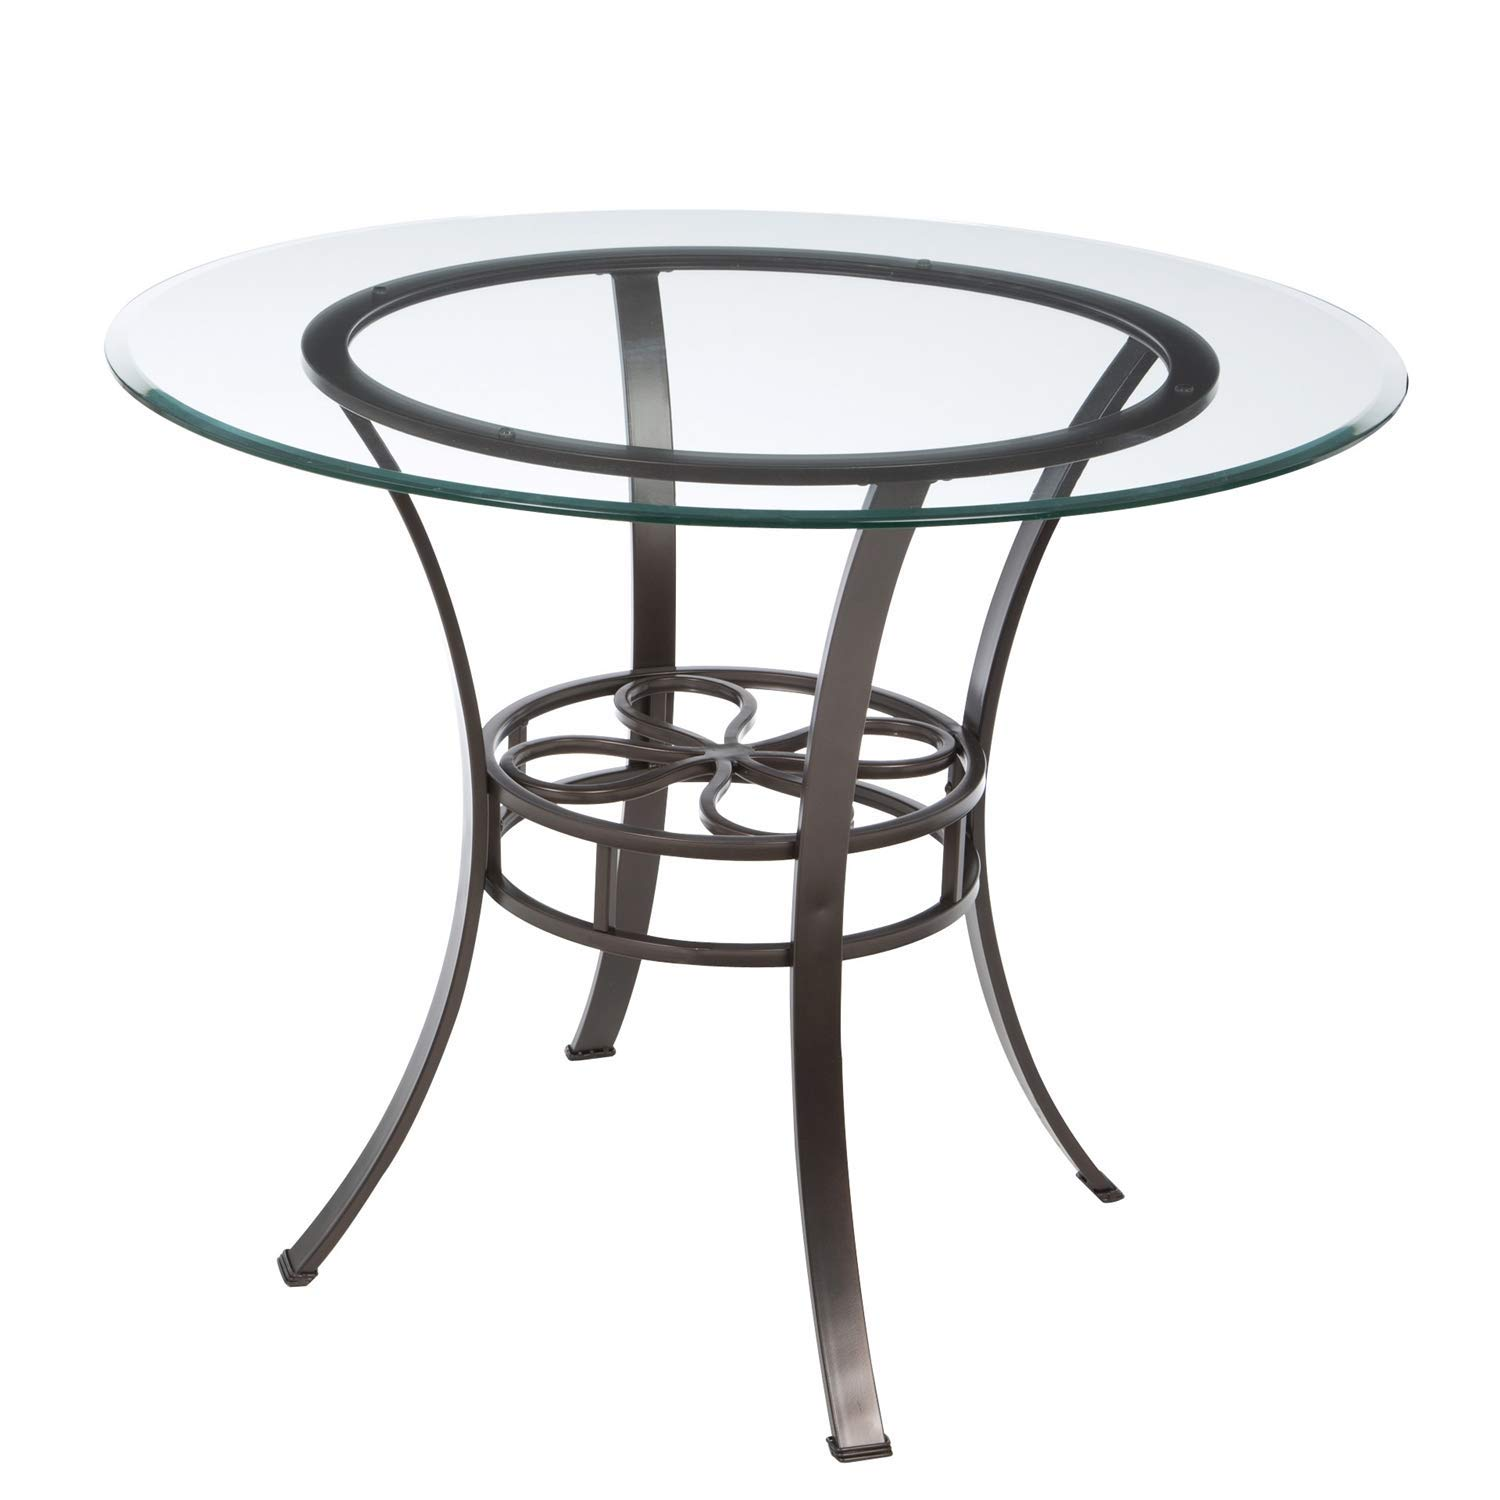 BeUniqueToday Round Glass Top Dining Table with Durable Metal Base, This Round Glass Top Dining Table is Classically Styled with A Modern Flair, Sturdy Metal Base in Dark Chocolate Finish